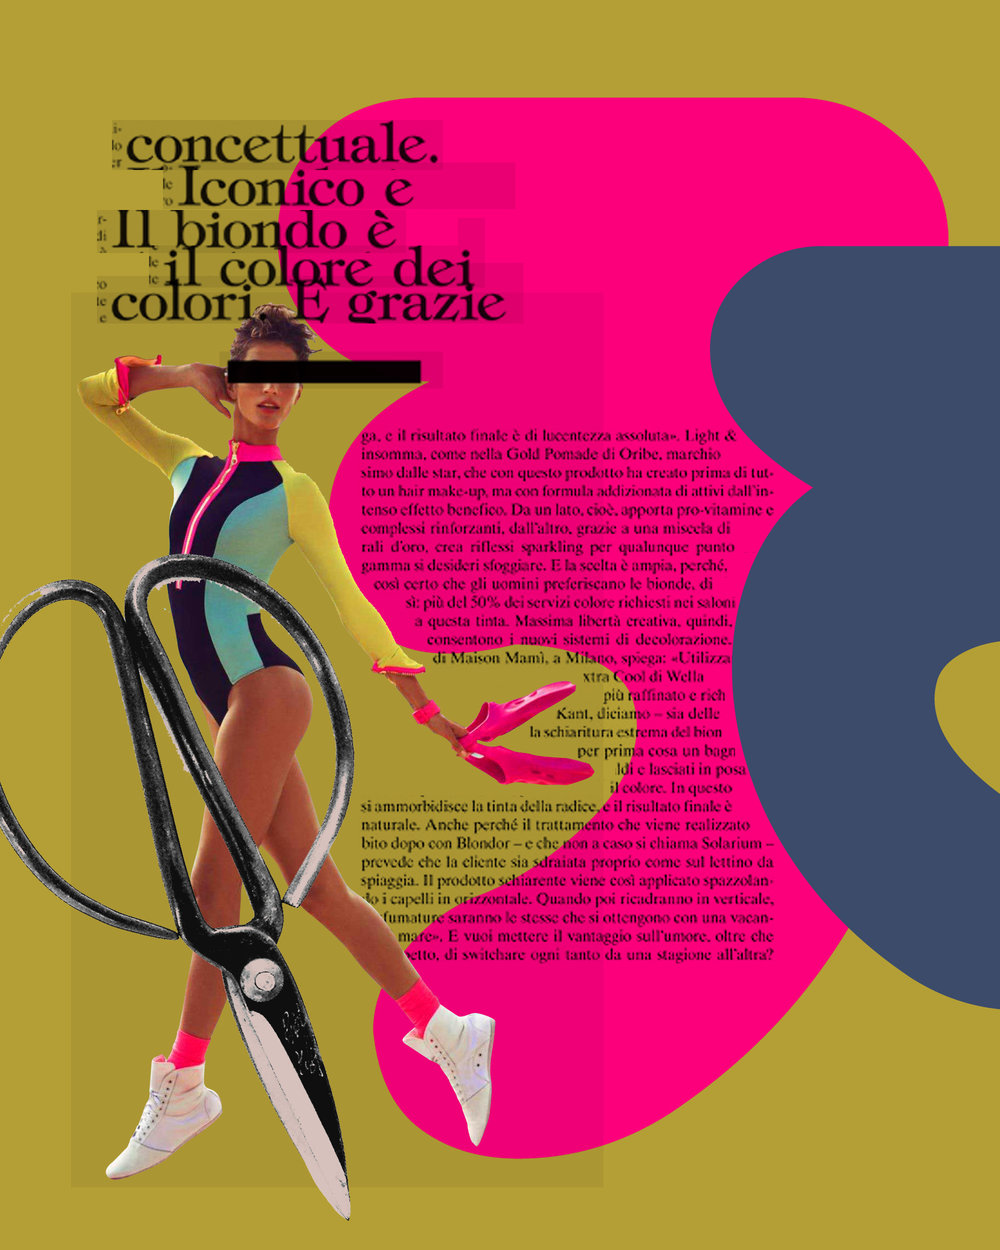 Guillaume Brière - Creative Director and Art Director - Art, Collage, Illustration and Drawings - Fashion, Beauty, Portrait, GIF, colours